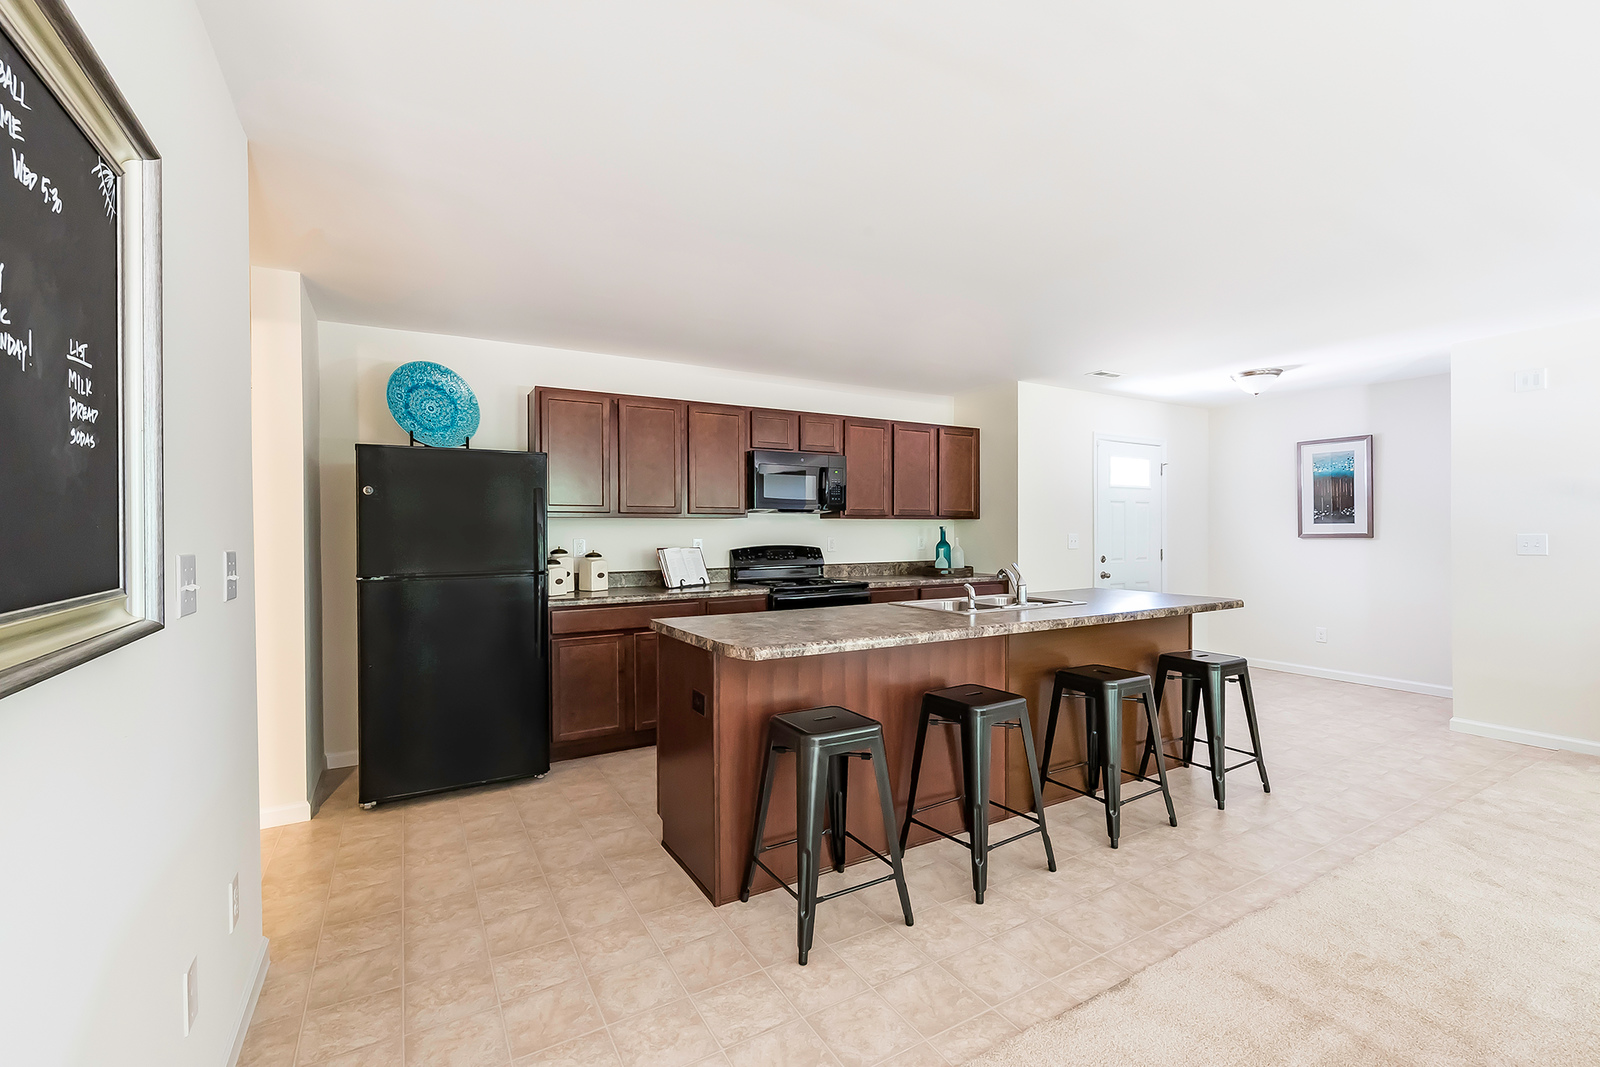 Plan 1753 at Independence Woods